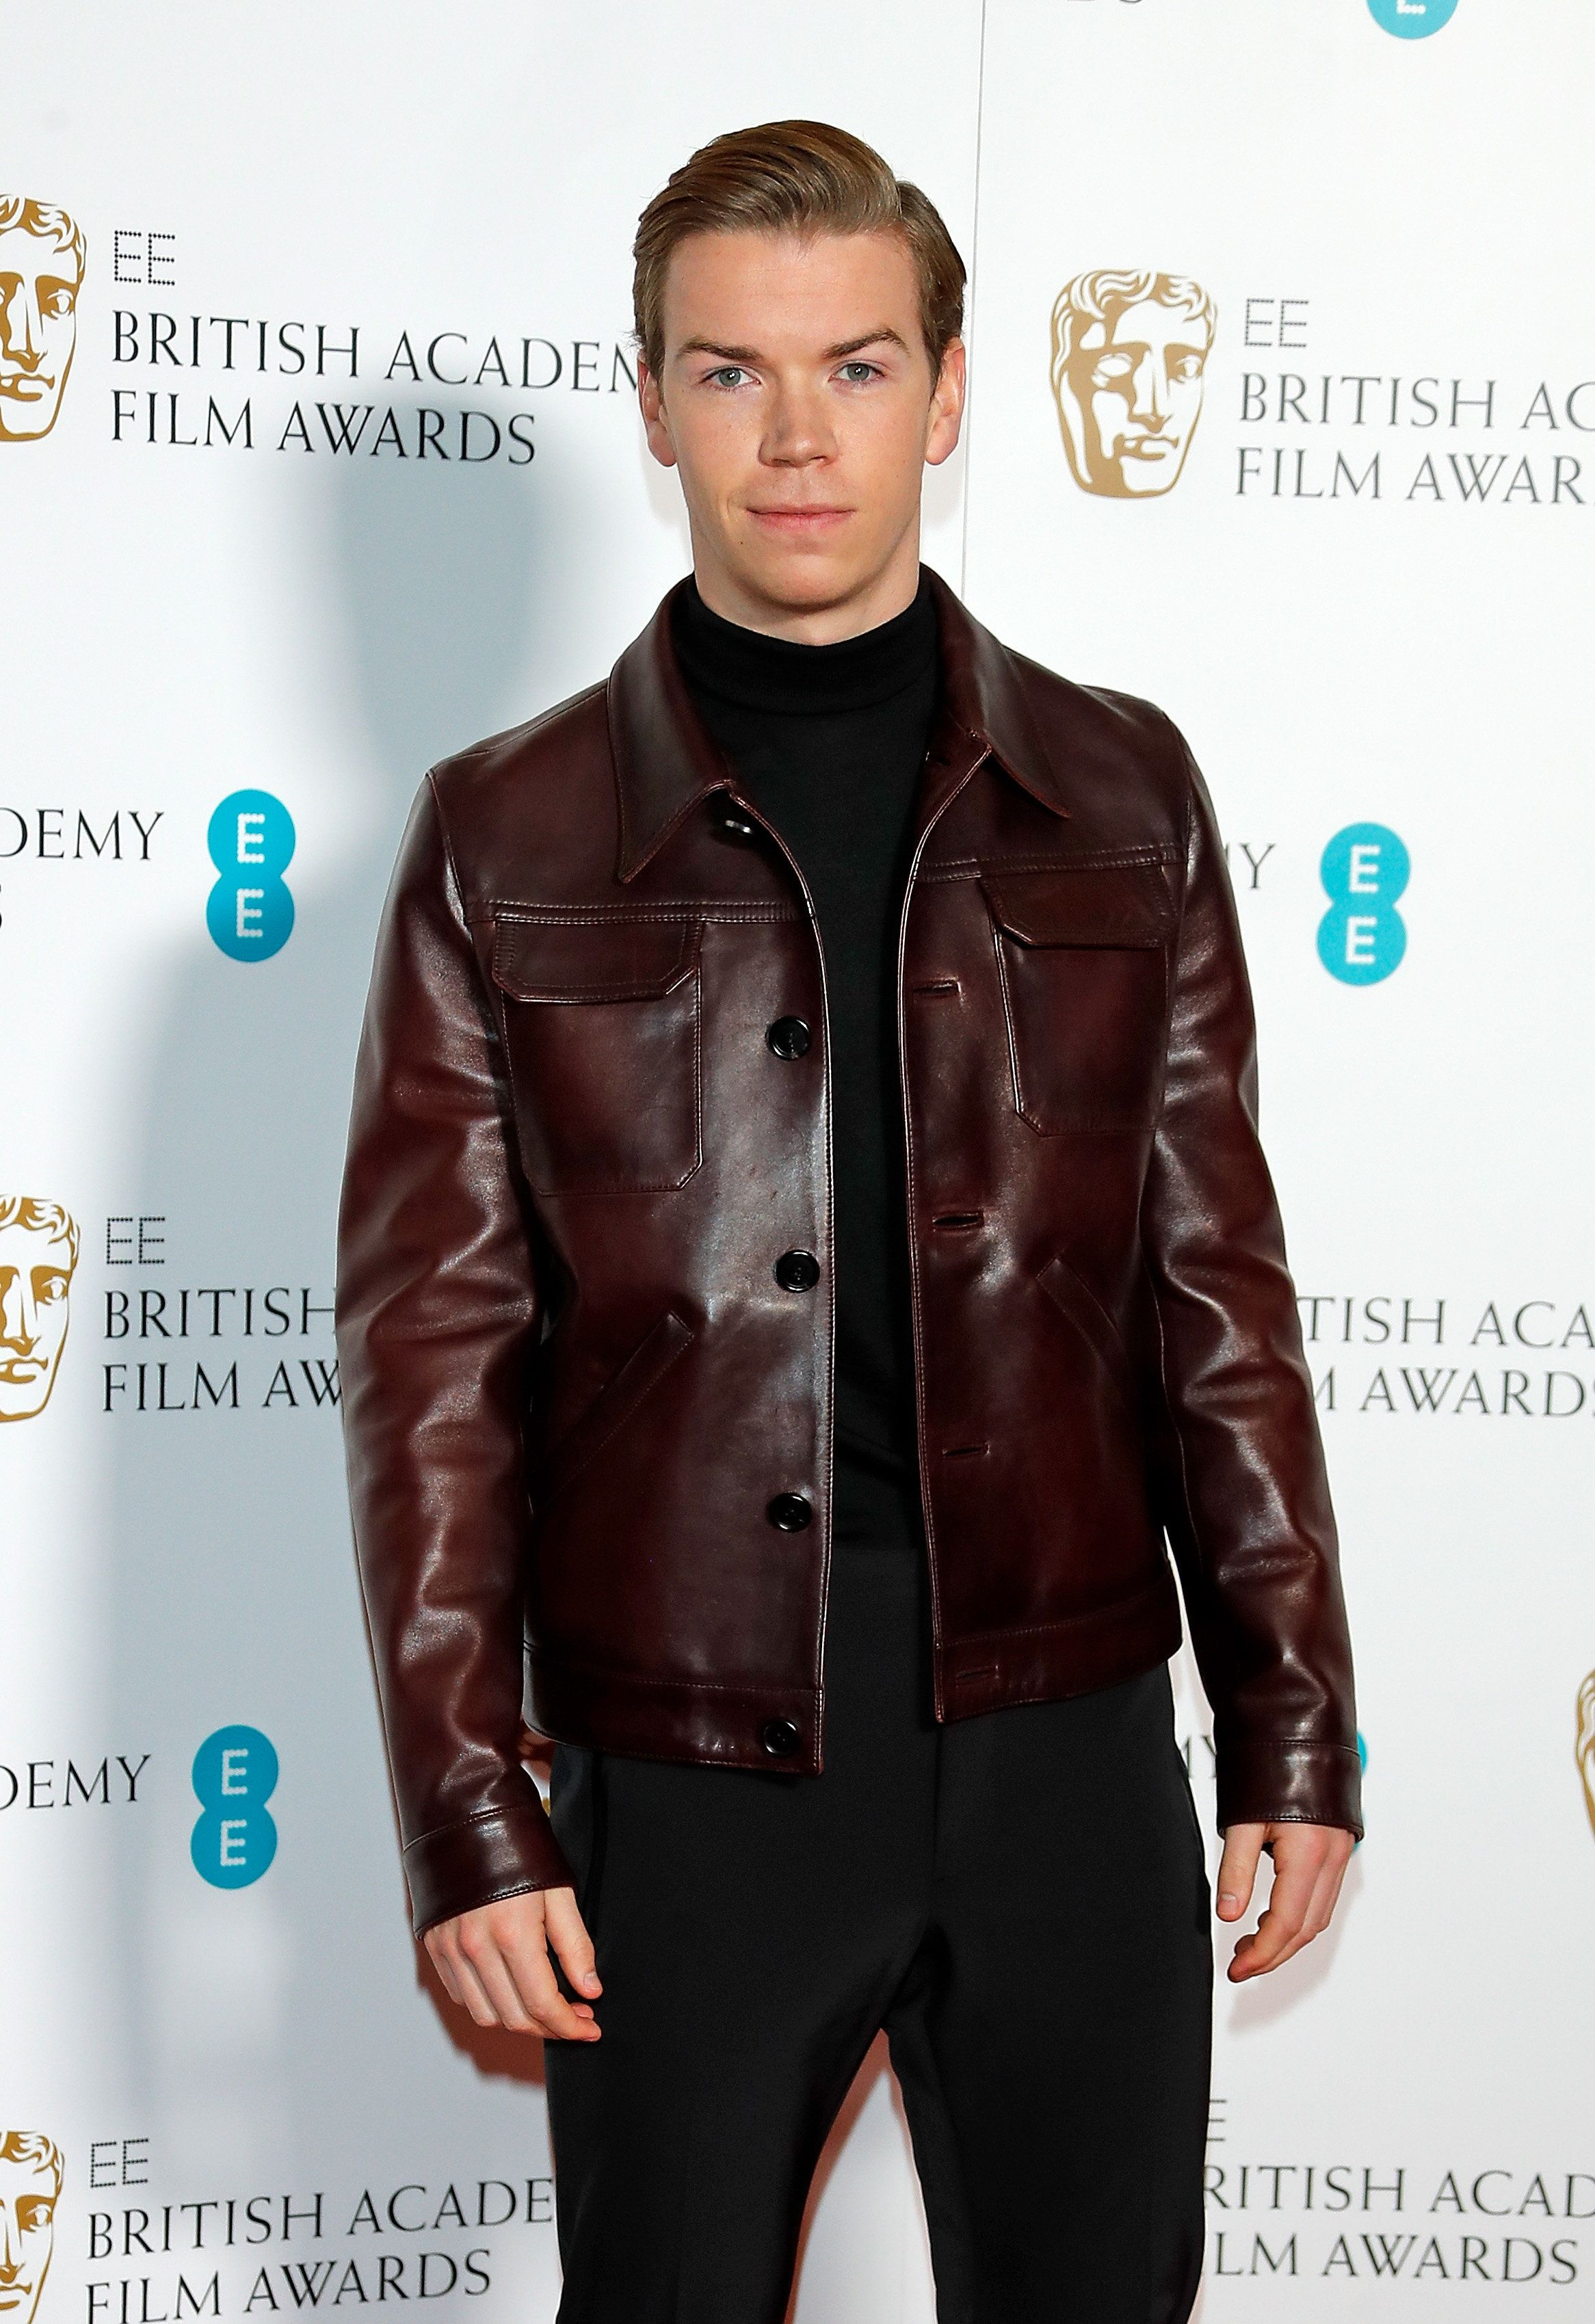 'Bandersnatch' Actor Will Poulter Explains His Decision To 'Take A Step Back' From